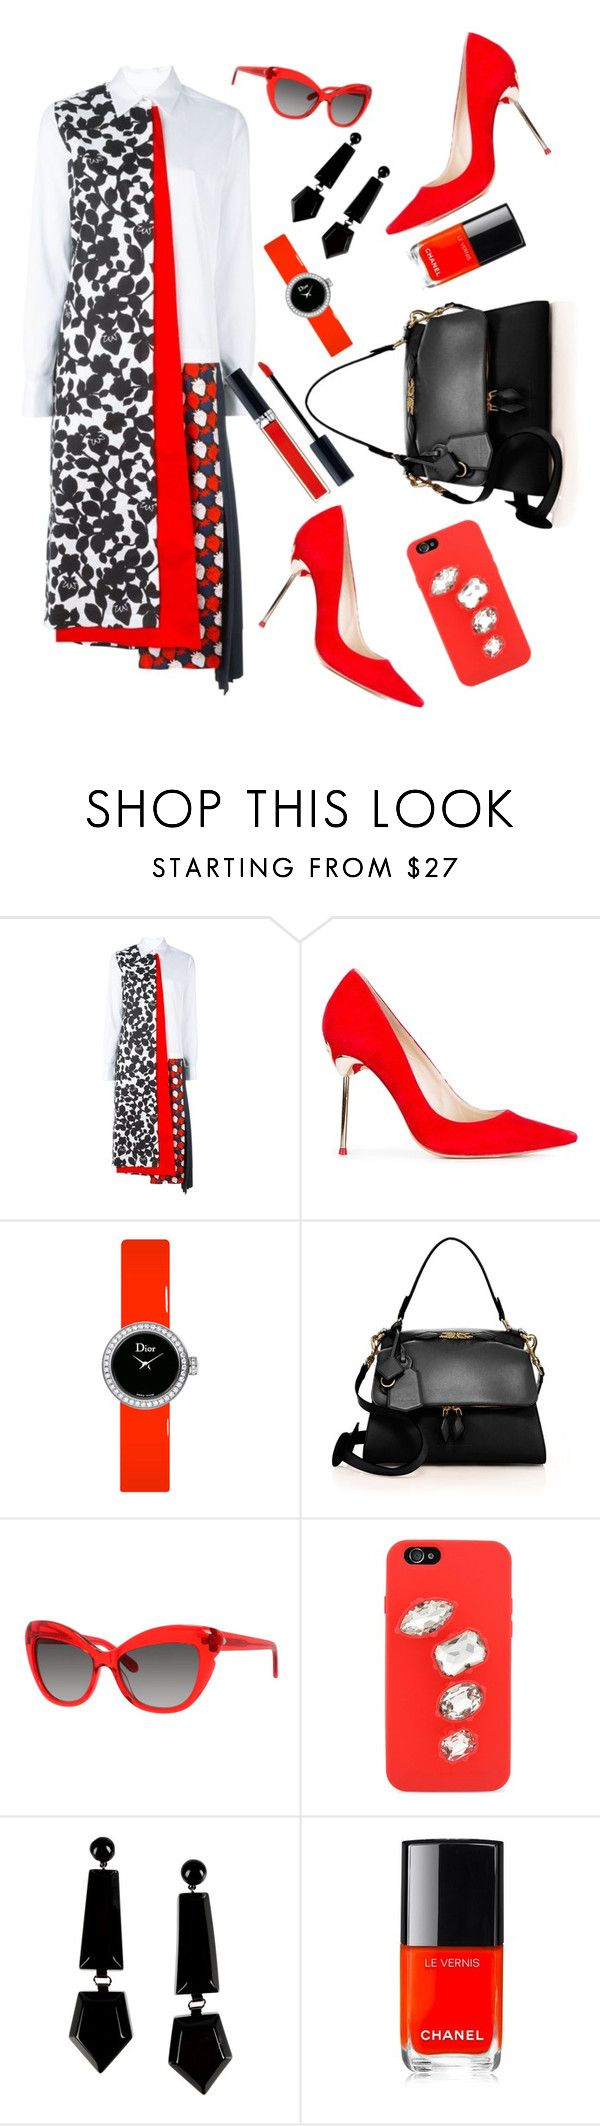 """Untitled #1023"" by lisacom ❤ liked on Polyvore featuring Victoria, Victoria Beckham, Sophia Webster, Christian Dior, Victoria Beckham, Kate Spade, STELLA McCARTNEY, Emporio Armani and Chanel"